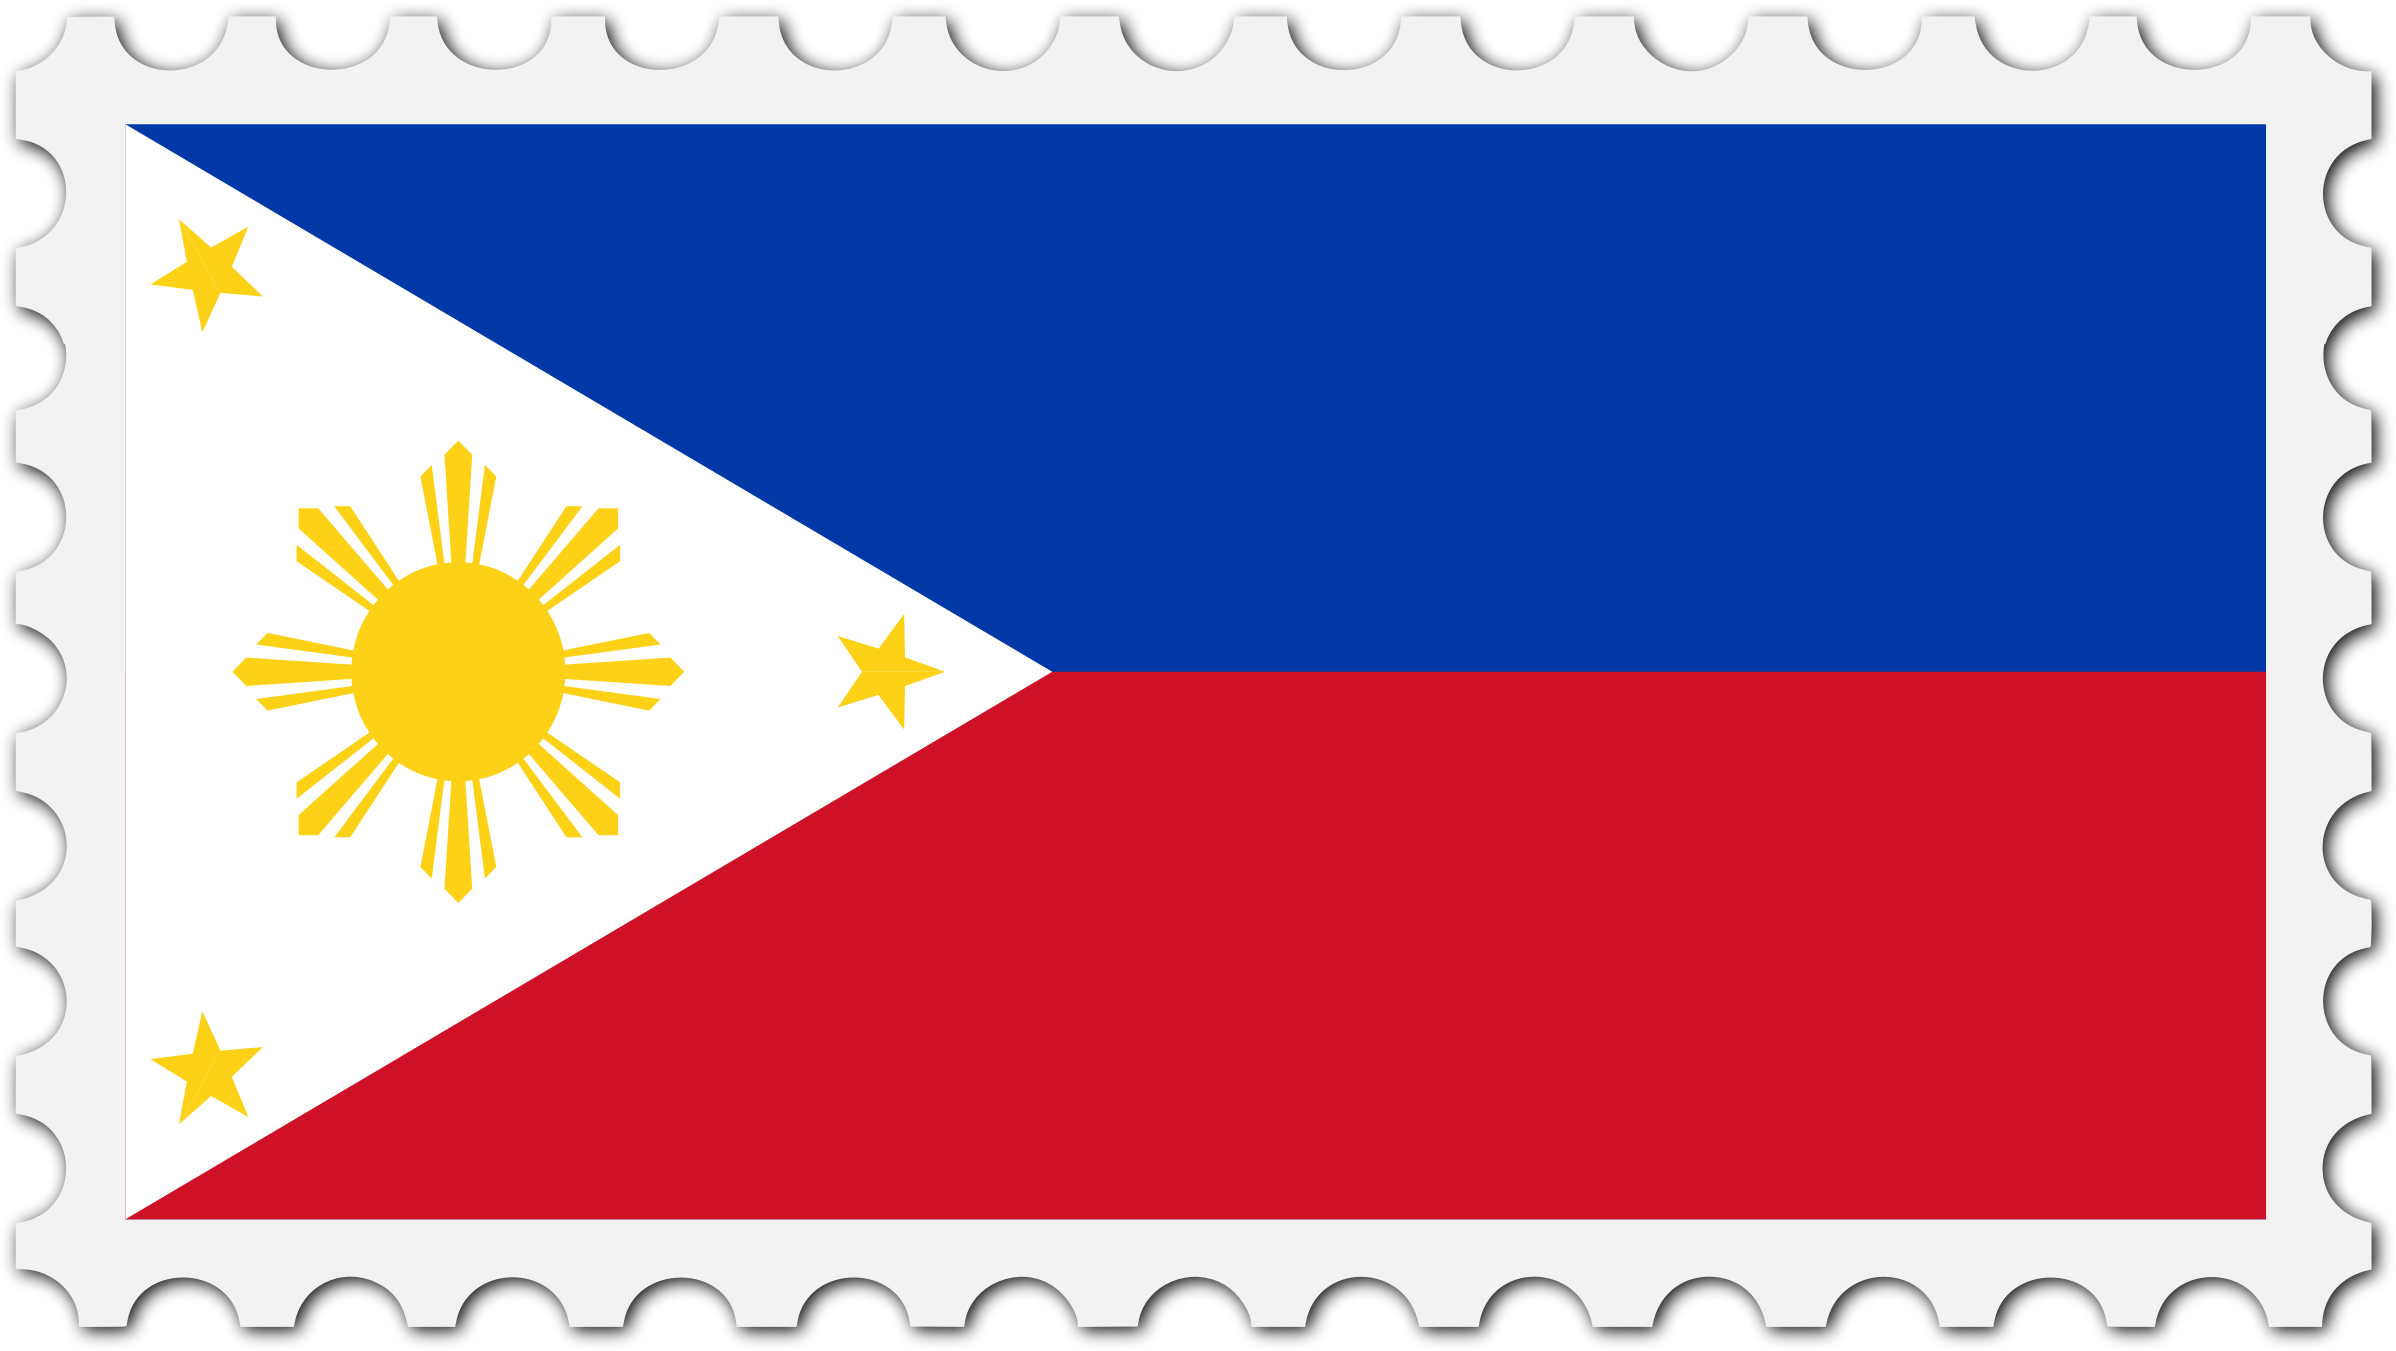 Philippines flag stamp by Firkin